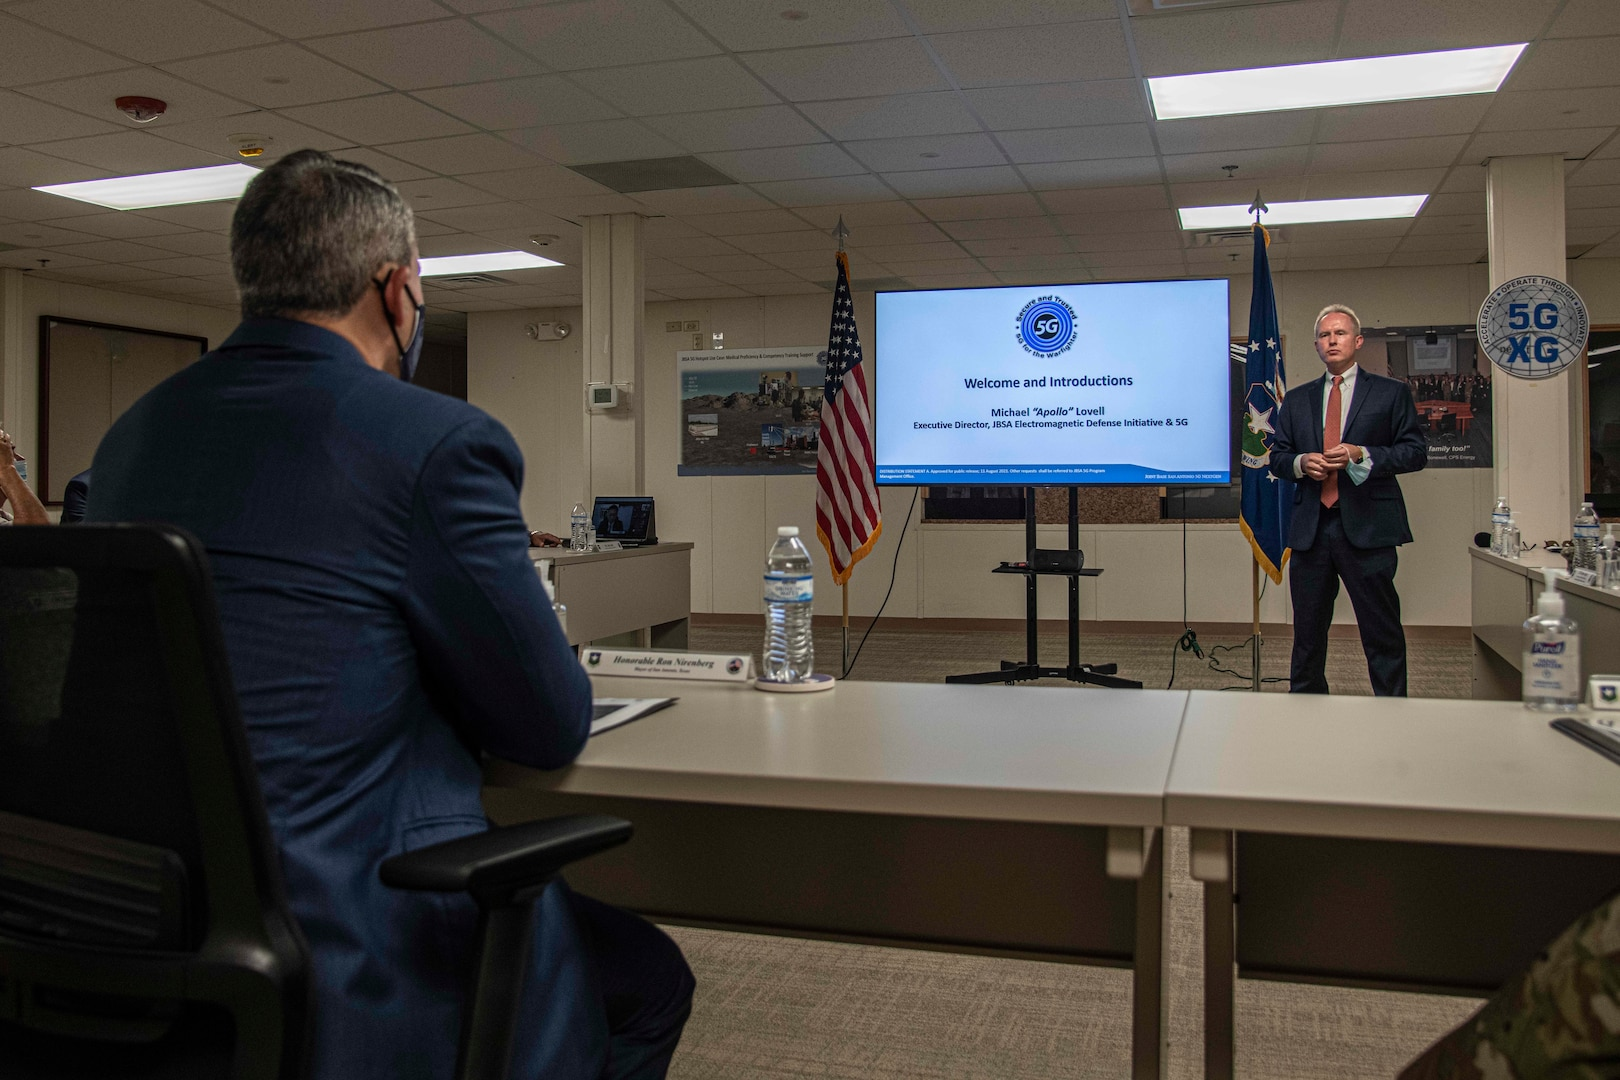 Man briefing in front of a video presentation